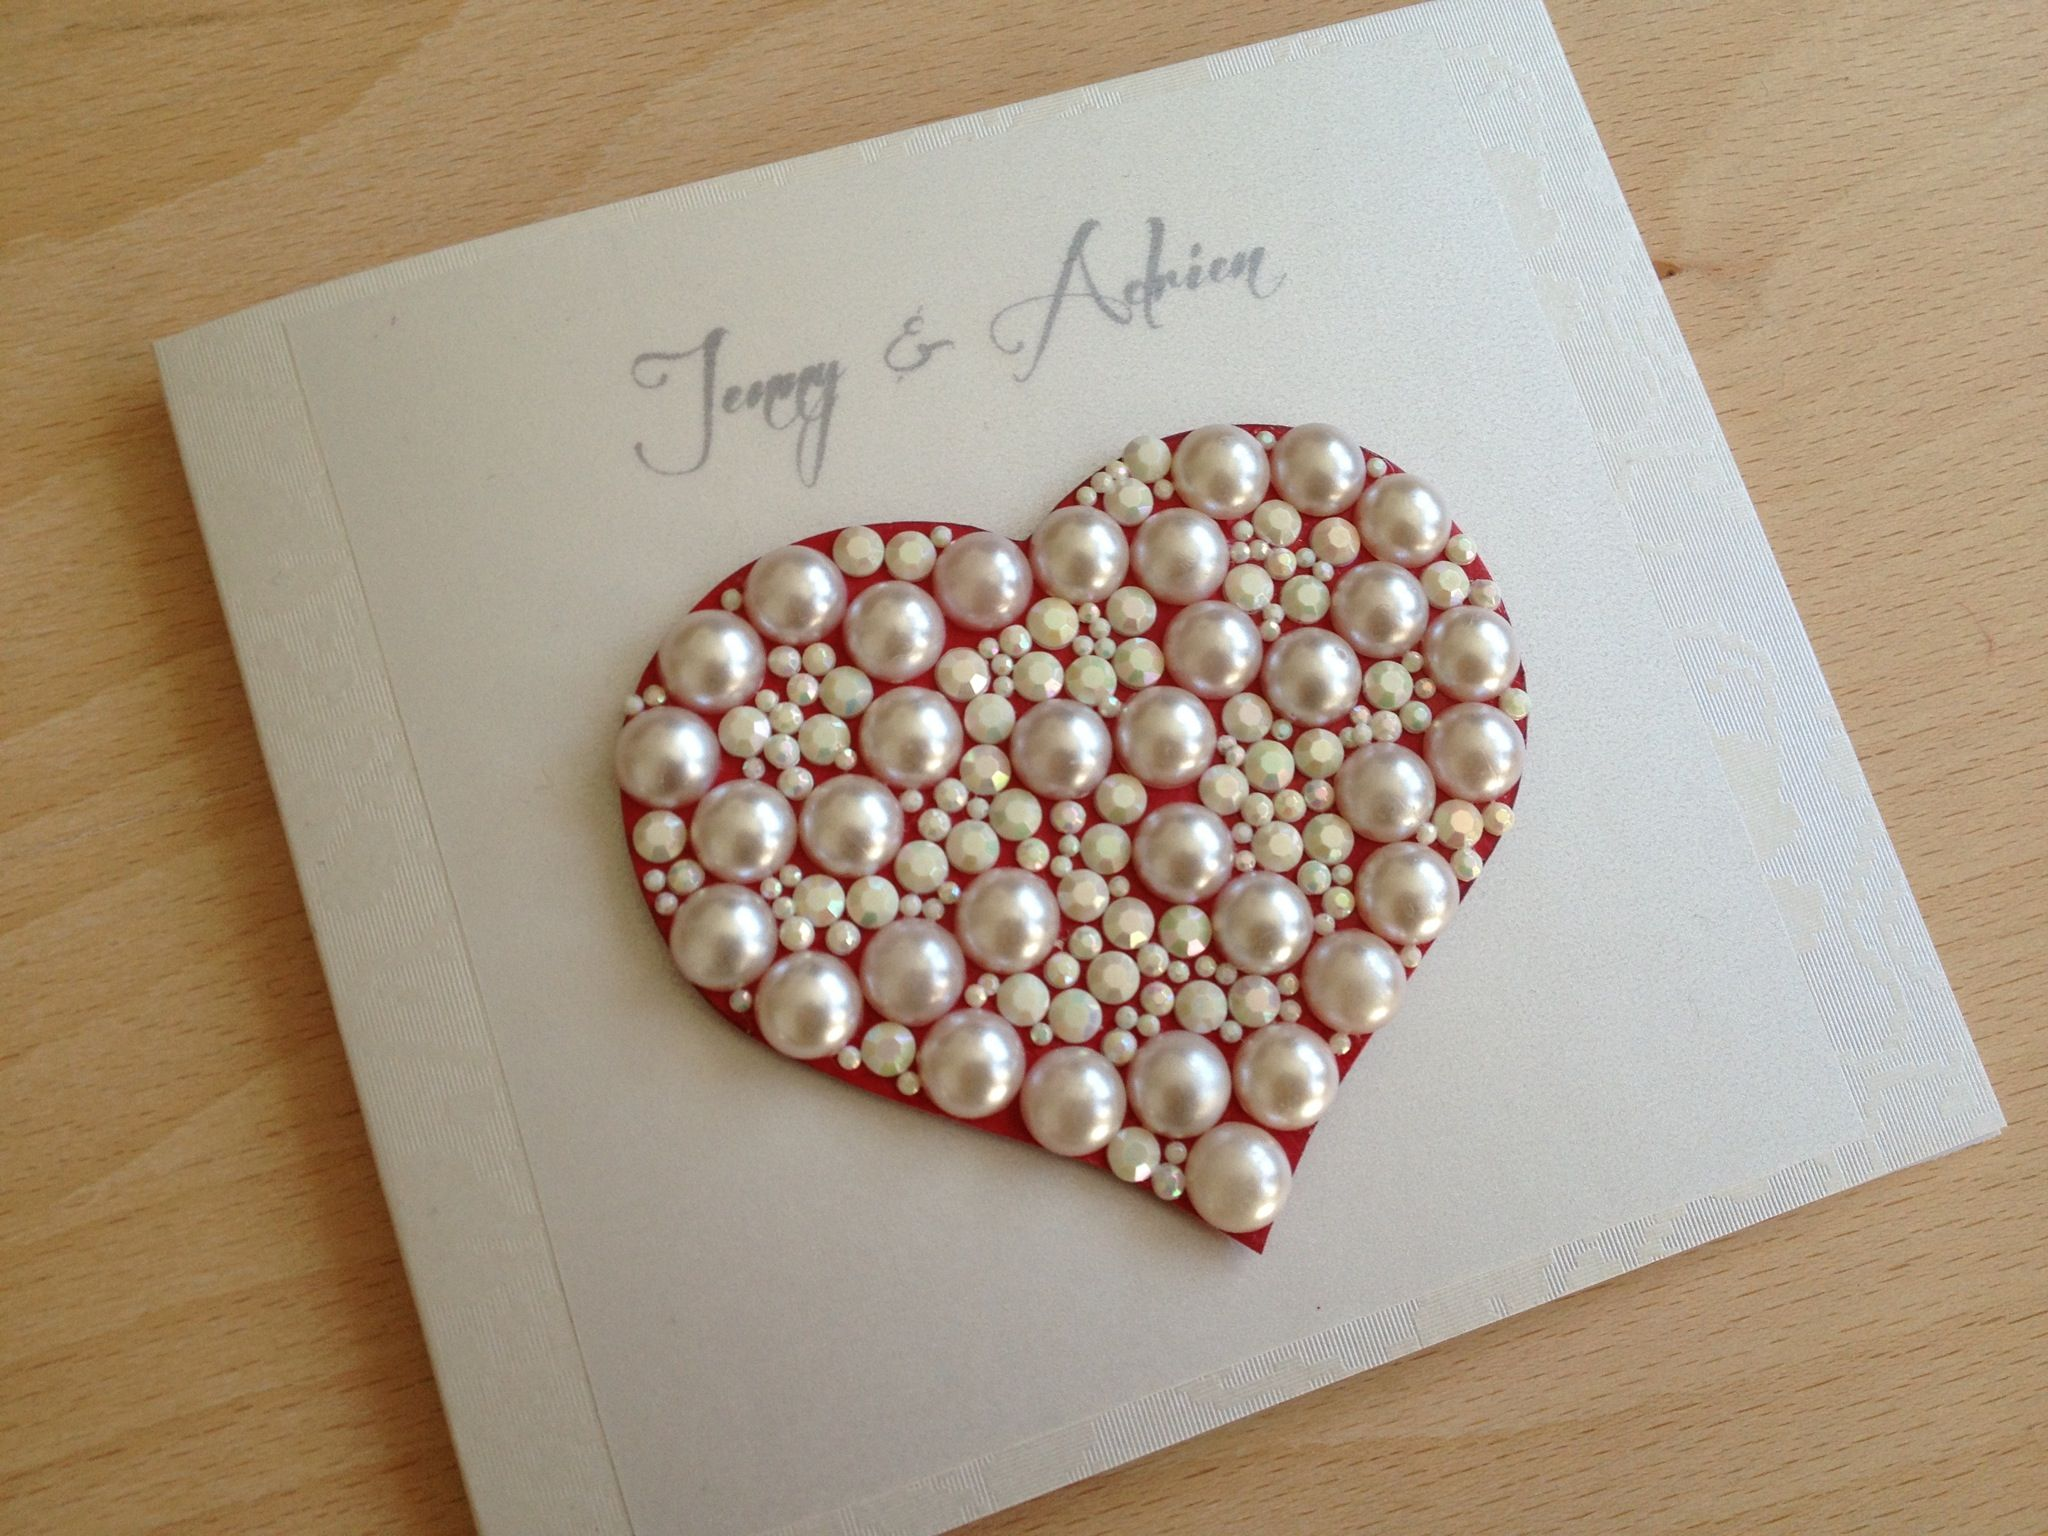 Pretty handmade wedding greeting cards wedding cards pinterest pretty handmade wedding greeting cards kristyandbryce Image collections